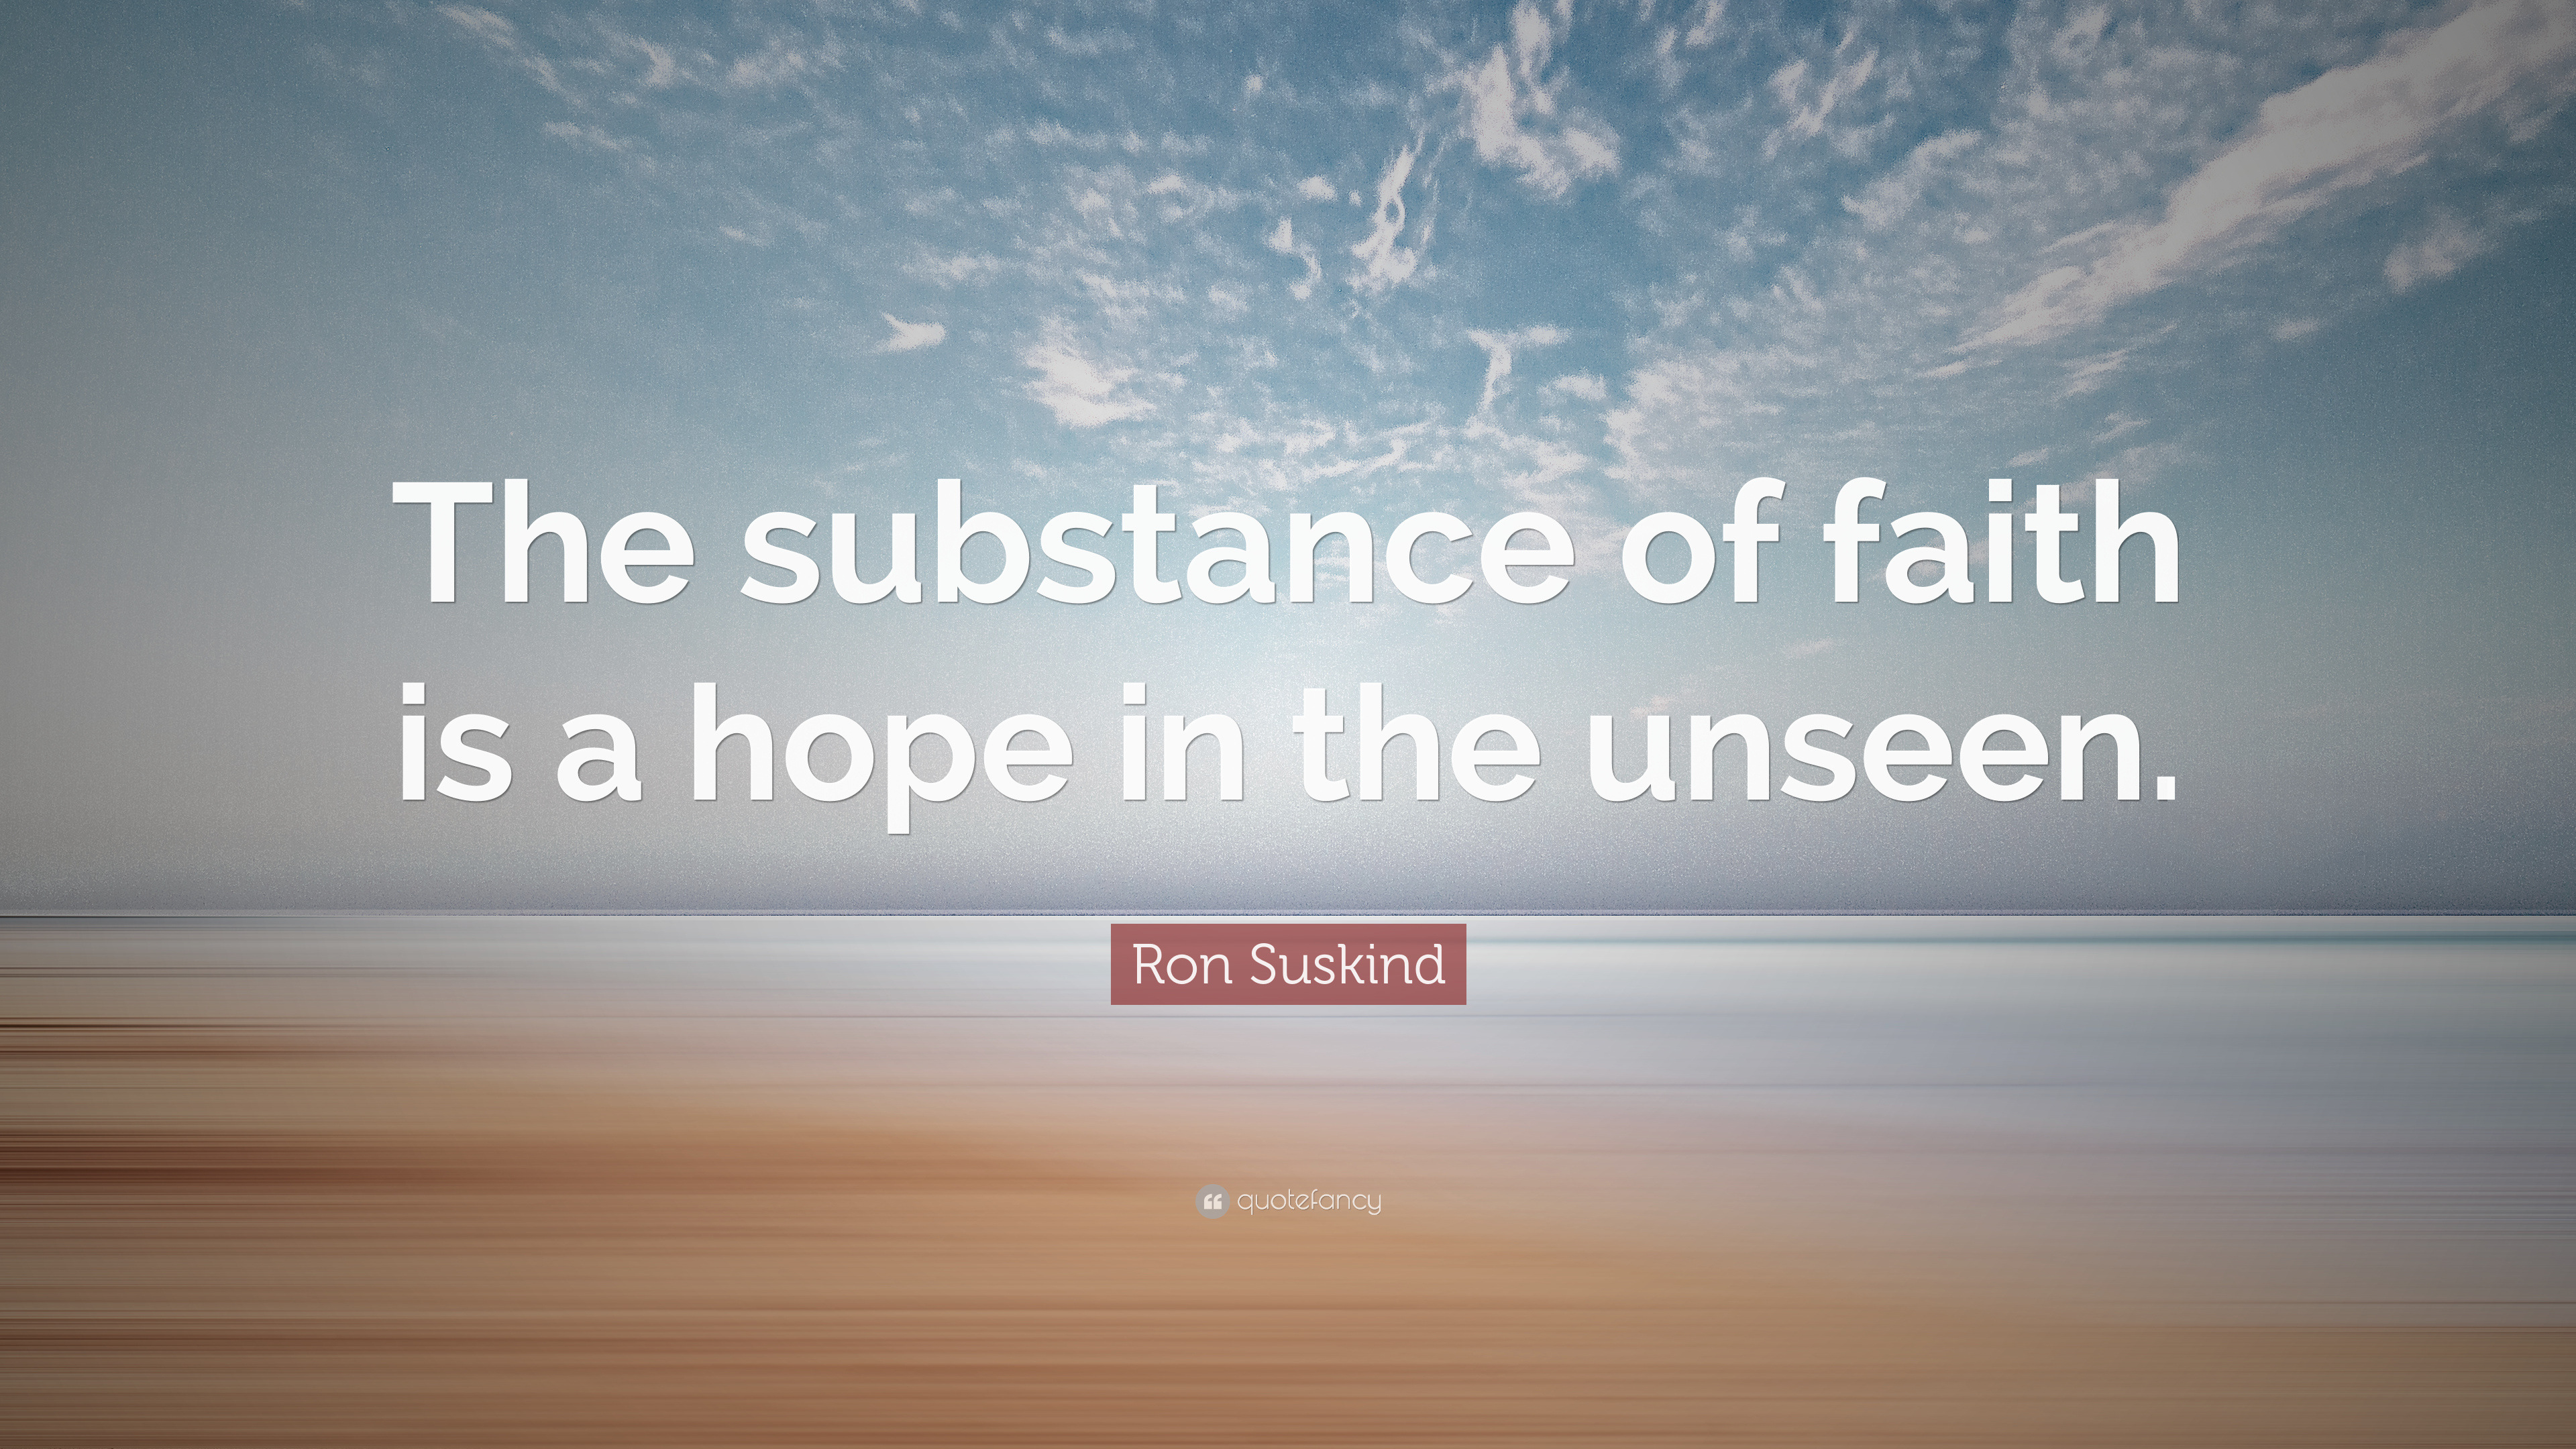 a hope in the unseen written by ron suskind essay About the author: philhissom phil hissom has spent his career designing  solutions to complex social problems initially focused on.